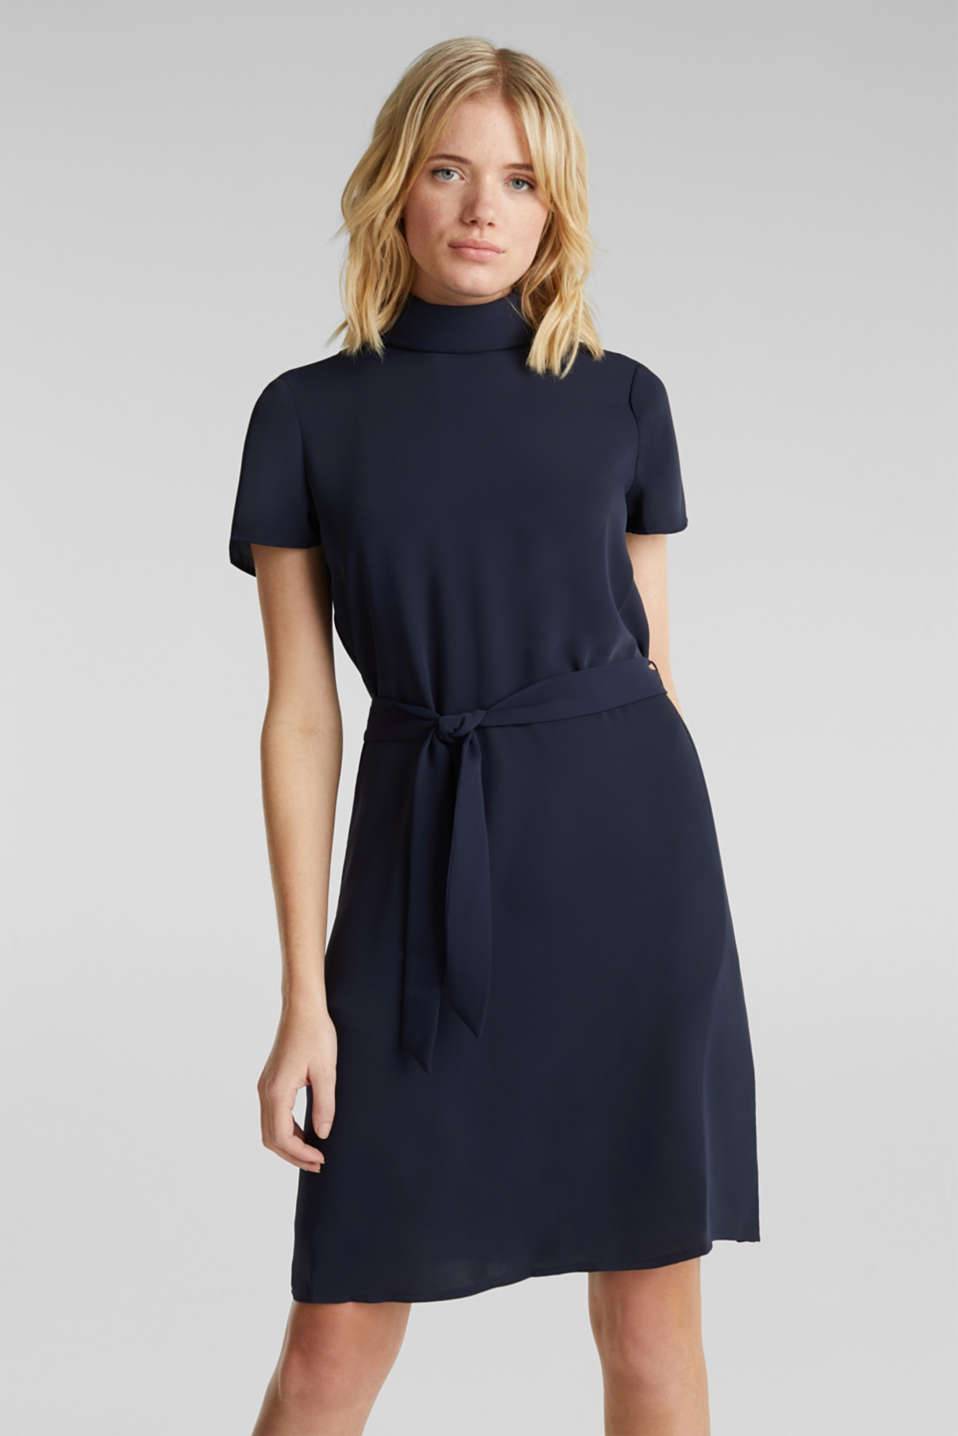 Esprit - Cloth polo neck dress